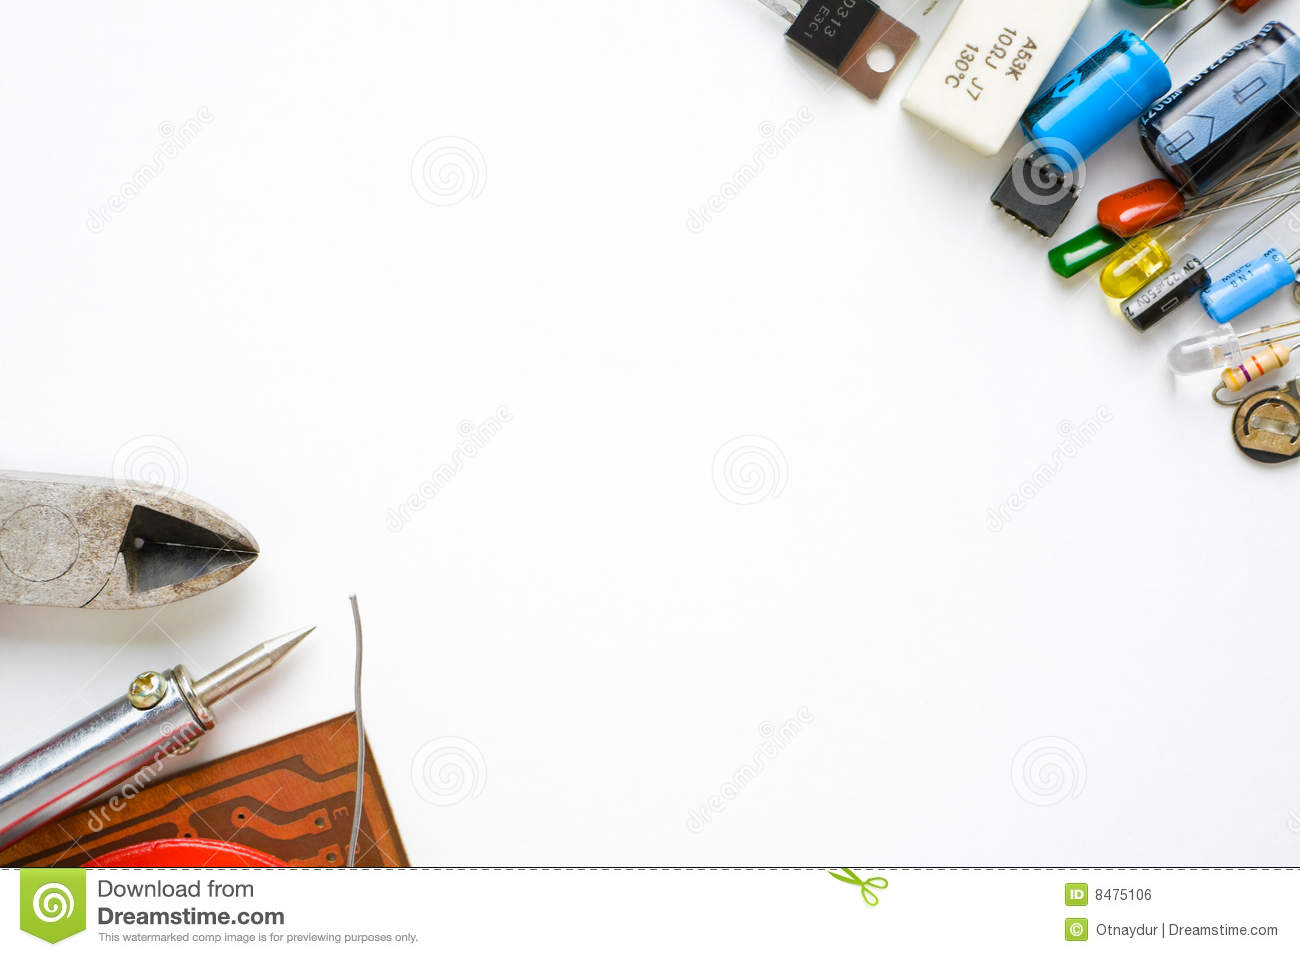 Opening an Electronic Components Retail Business